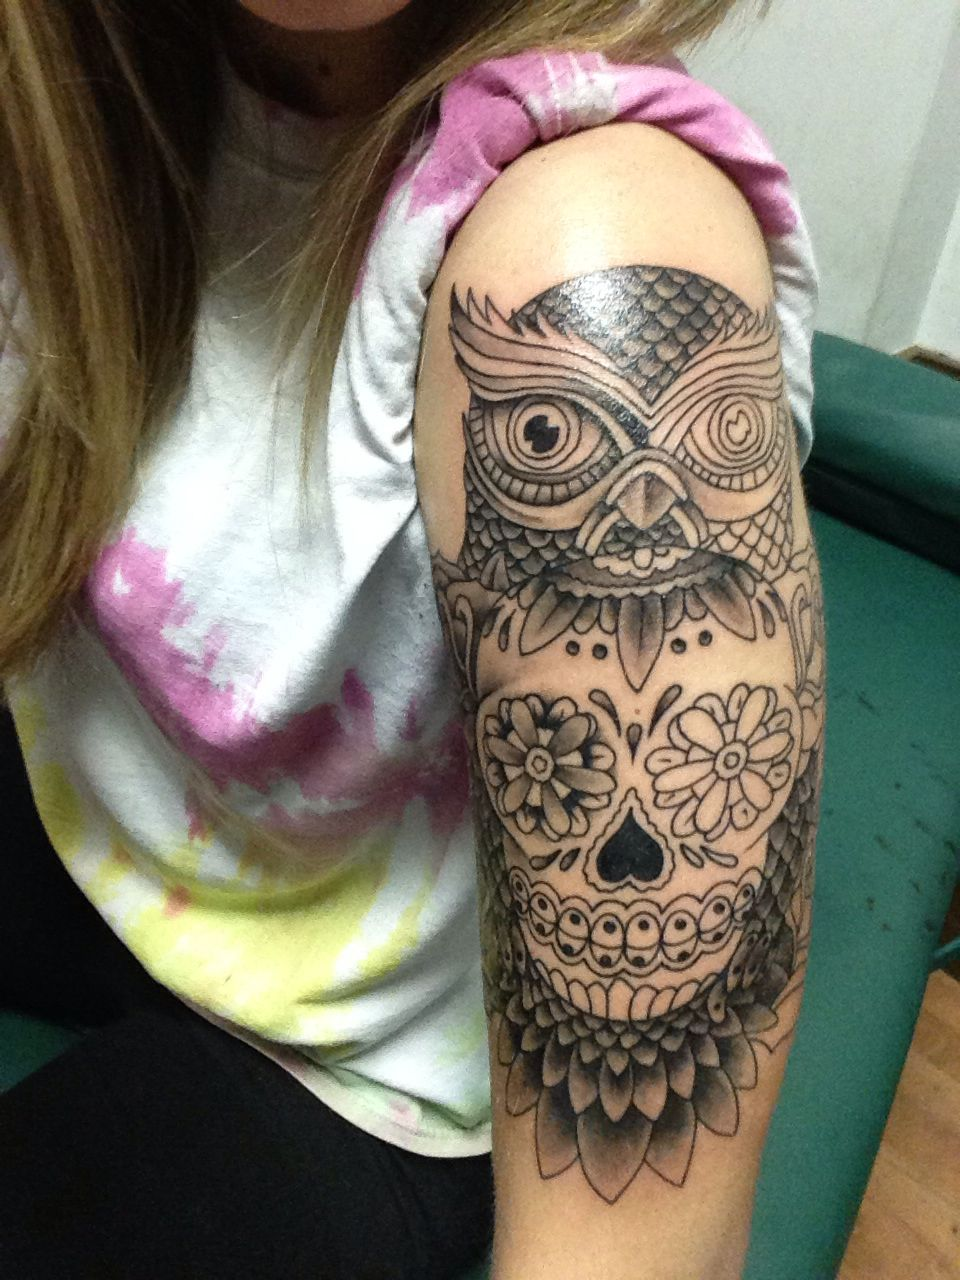 Almost finished owl and sugar skull half sleeve! Tattoos